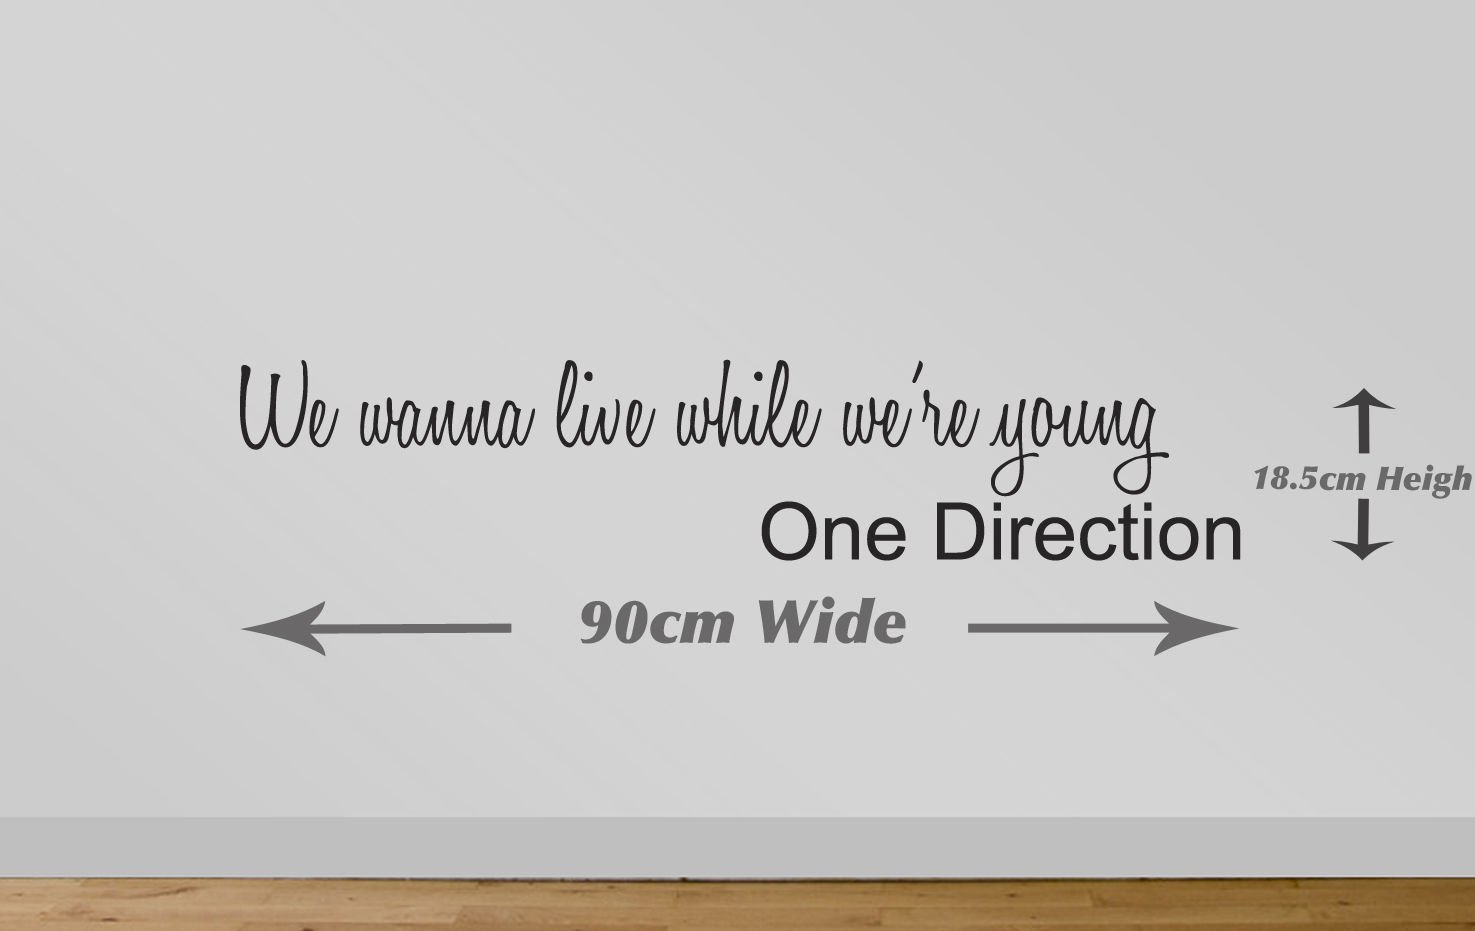 Juko One Direction Live While Were Young Wall Sticker Quote 25 ? We Wanna  Live While Weu0027re Young 90cm Wide Black: Amazon.co.uk: Kitchen U0026 Home Part 24